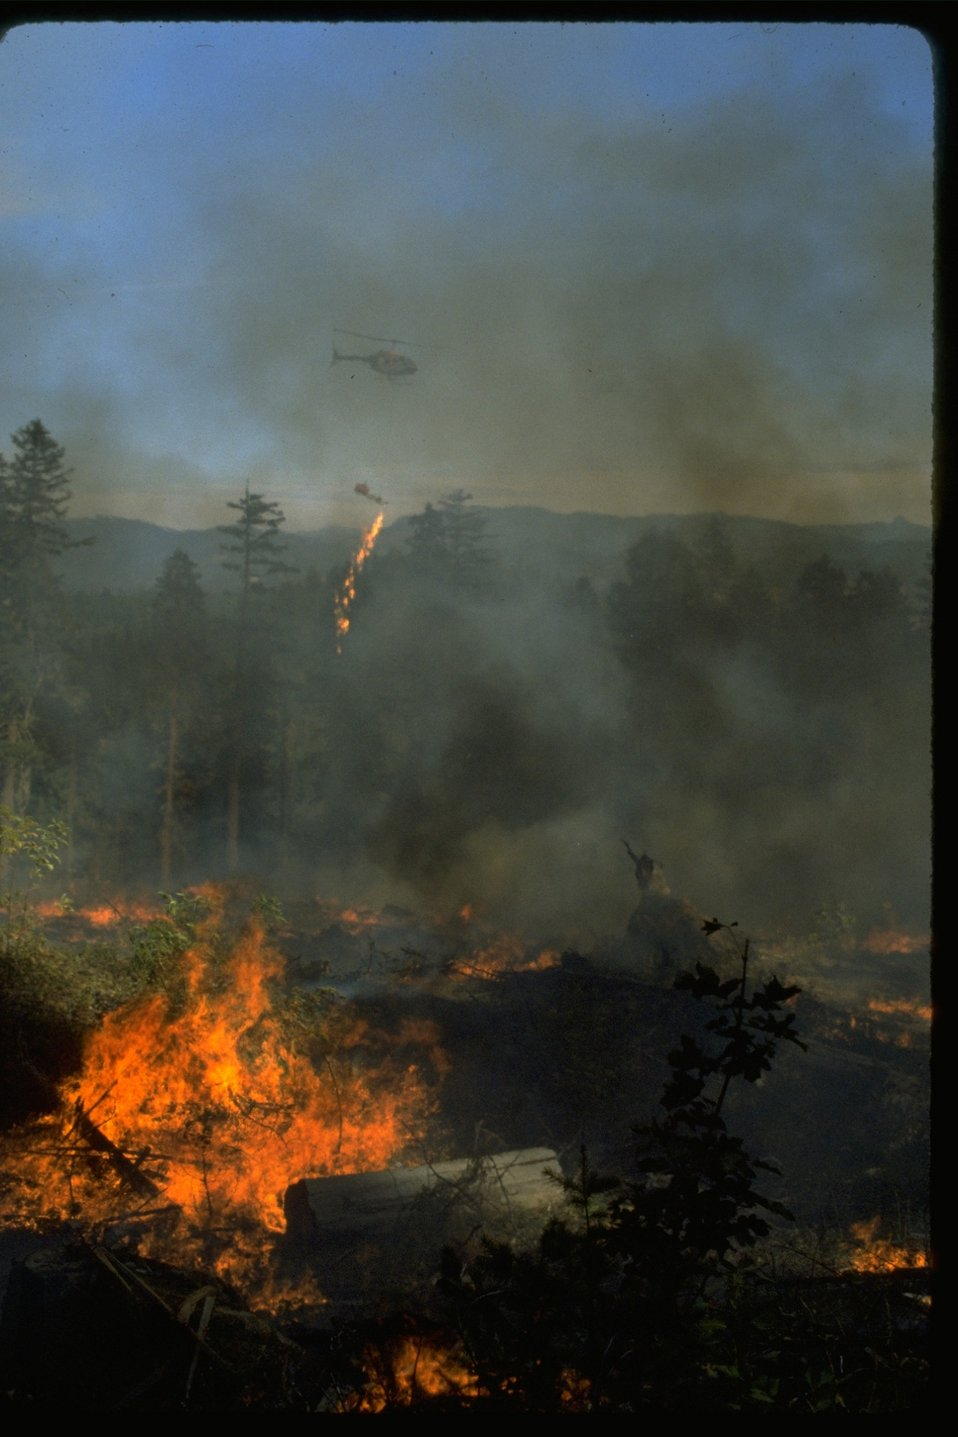 Heli-torching a prescribed fire.